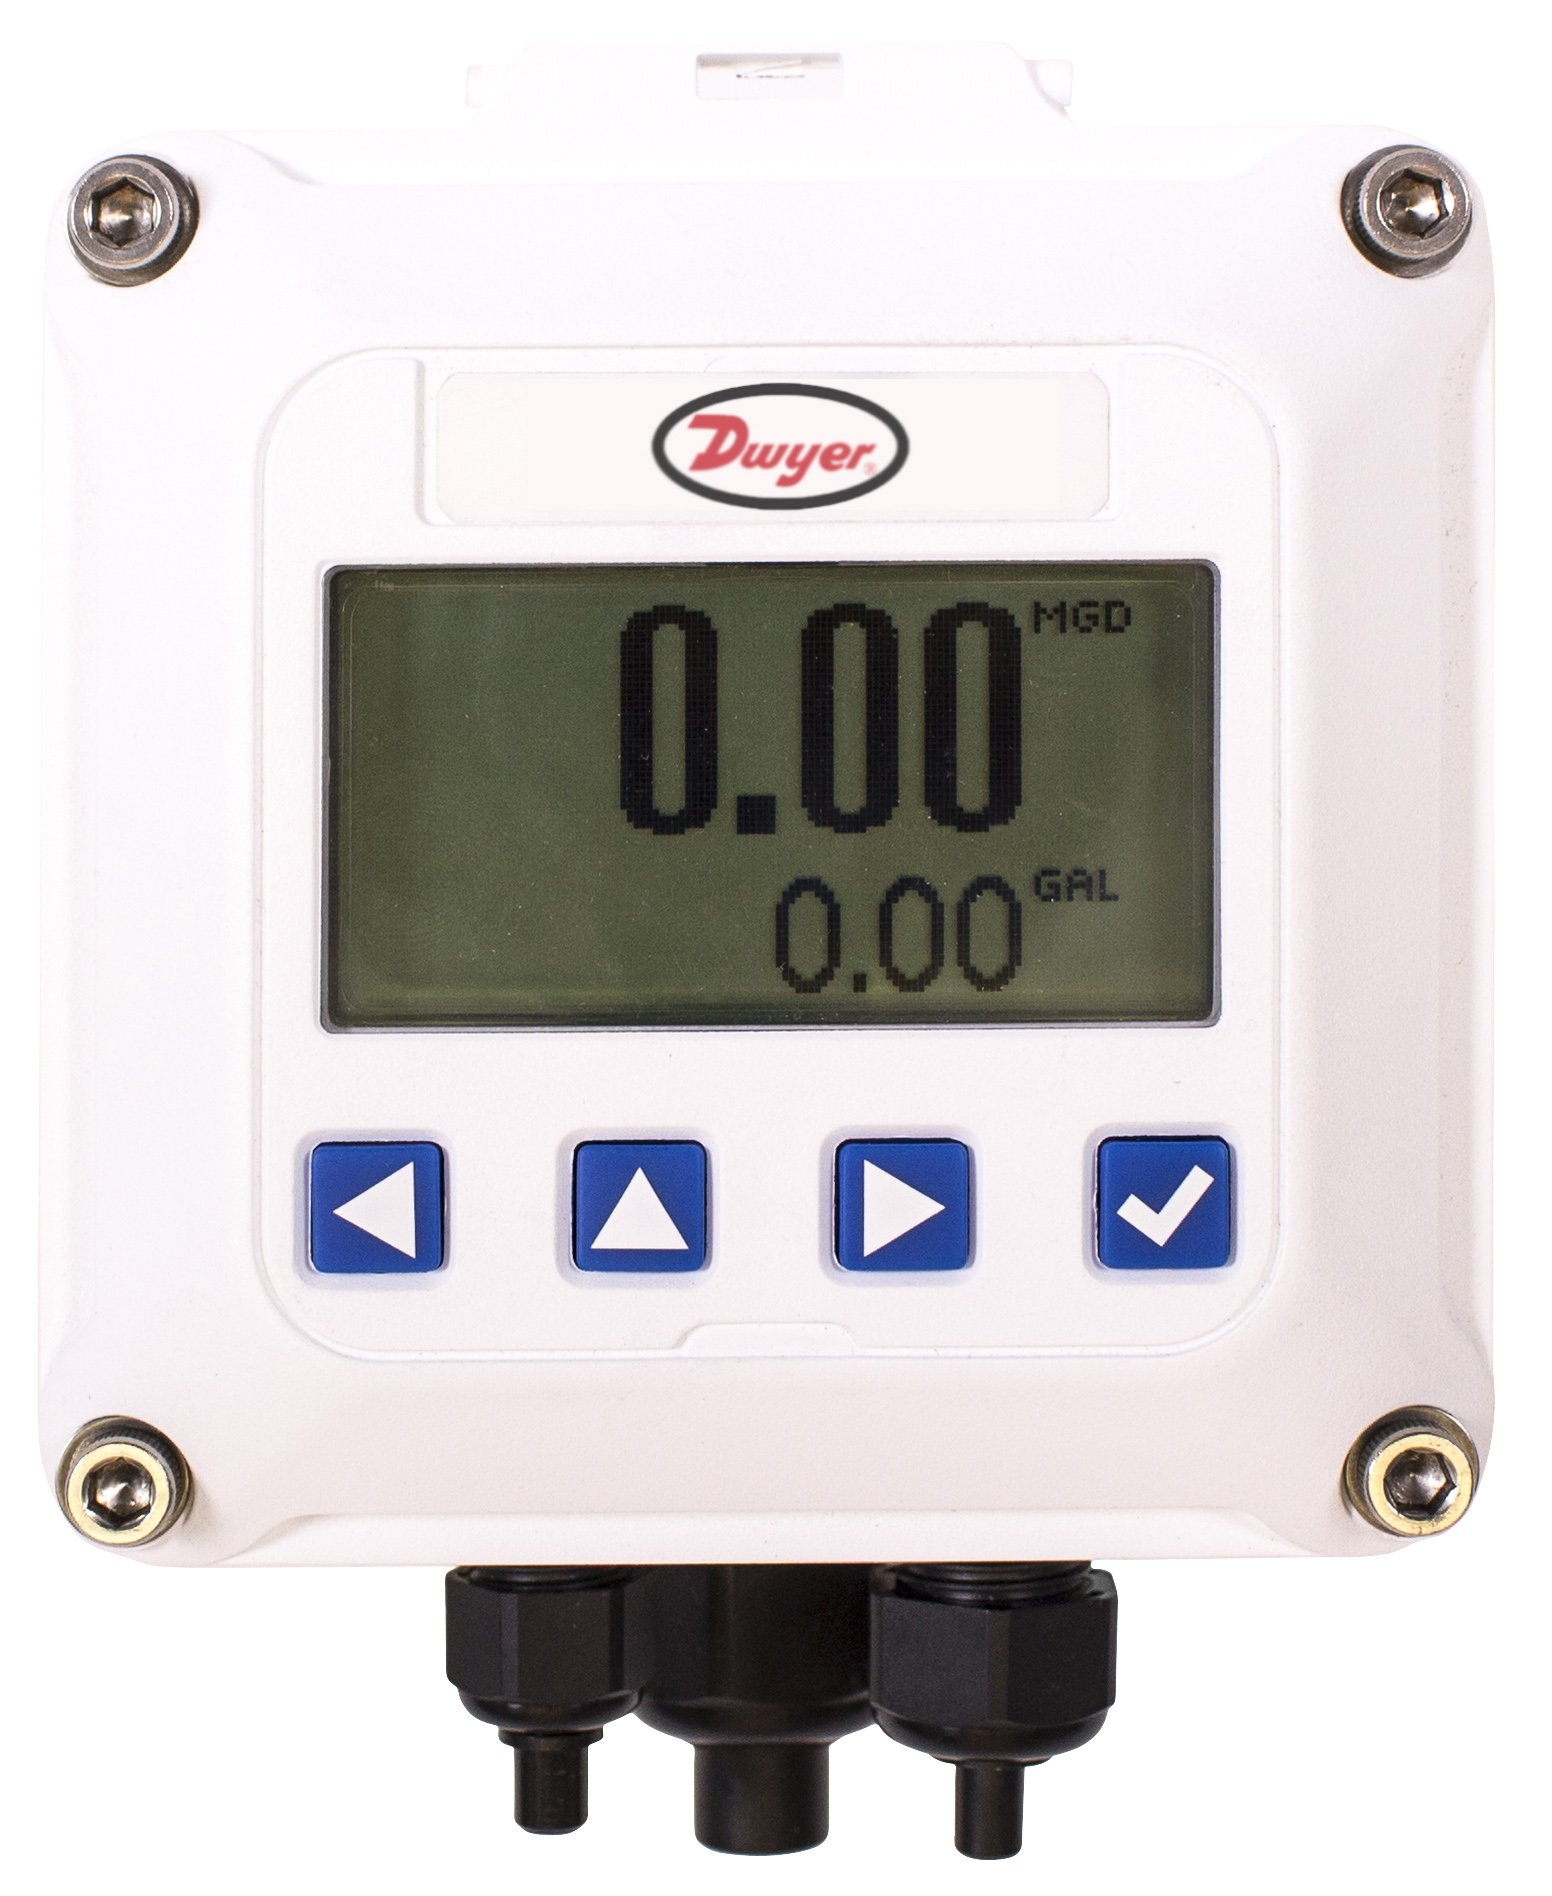 Dwyer RTI2-W Digital Rate/Total Indicator. Wall-Mounted, Loop Powered. Converts Pulse Signals from Compatible Flowmeters to Flow Rate and Total. Provides 4-20 mA Output Signal and High/Low Alarm.